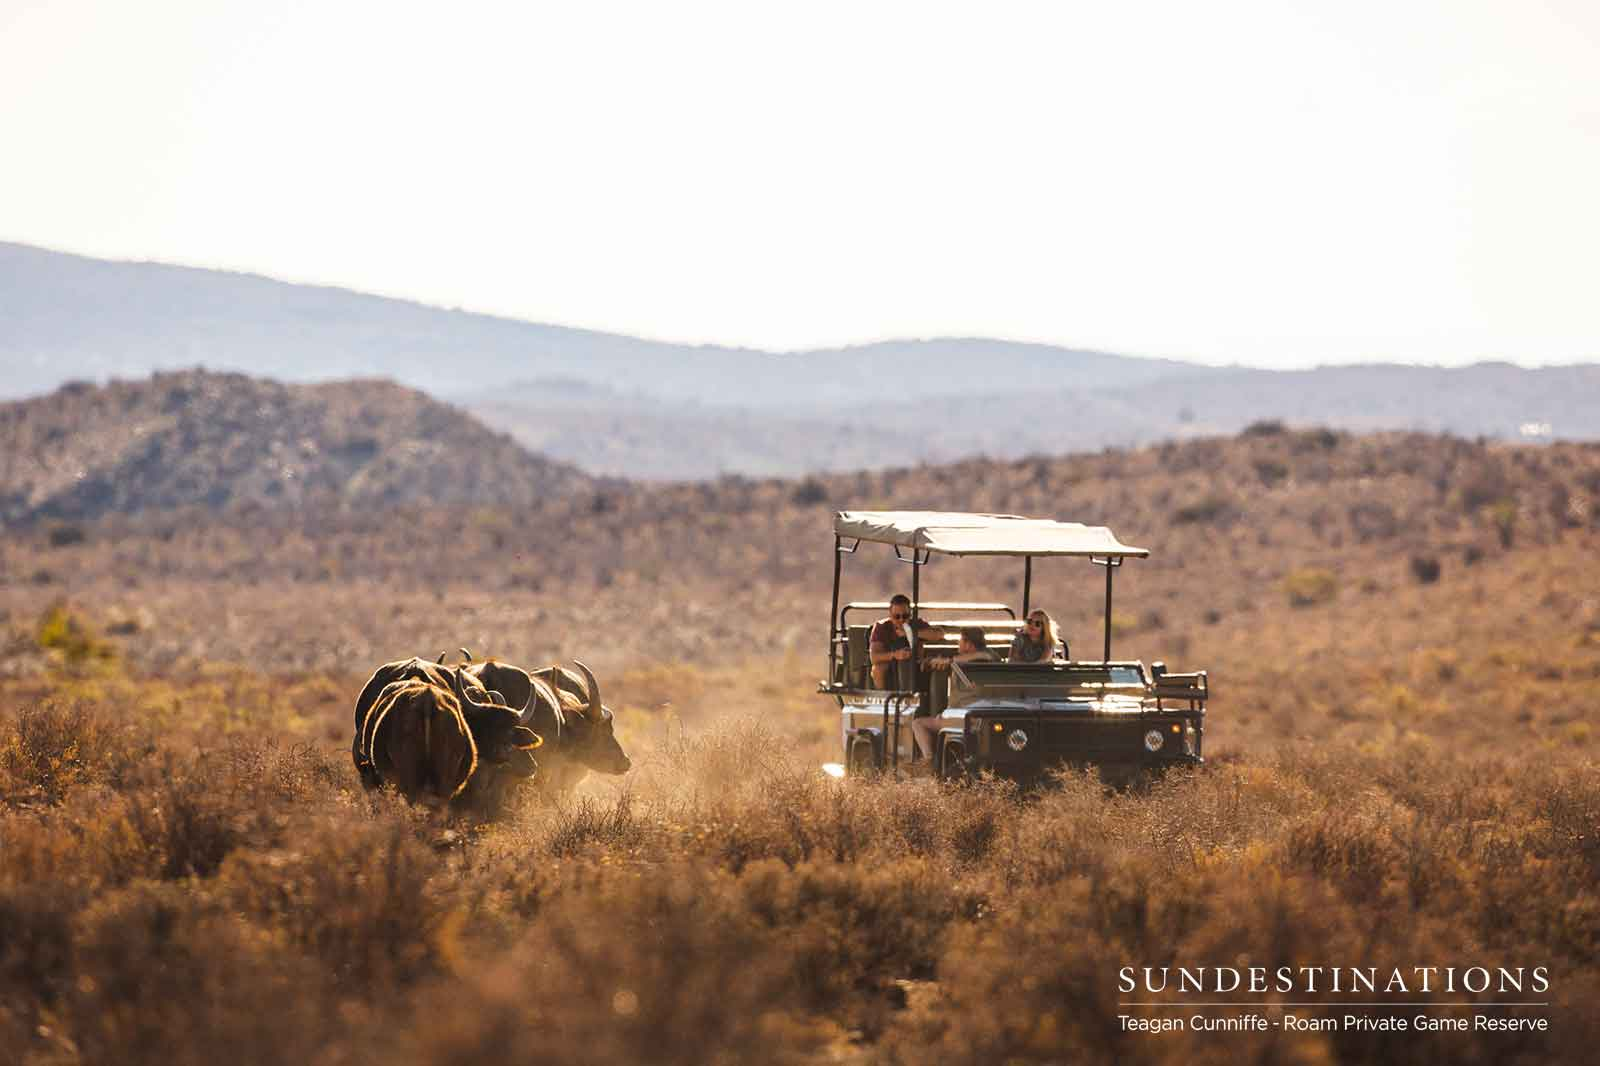 Visual Update from the Karoo's Roam Private Game Reserve